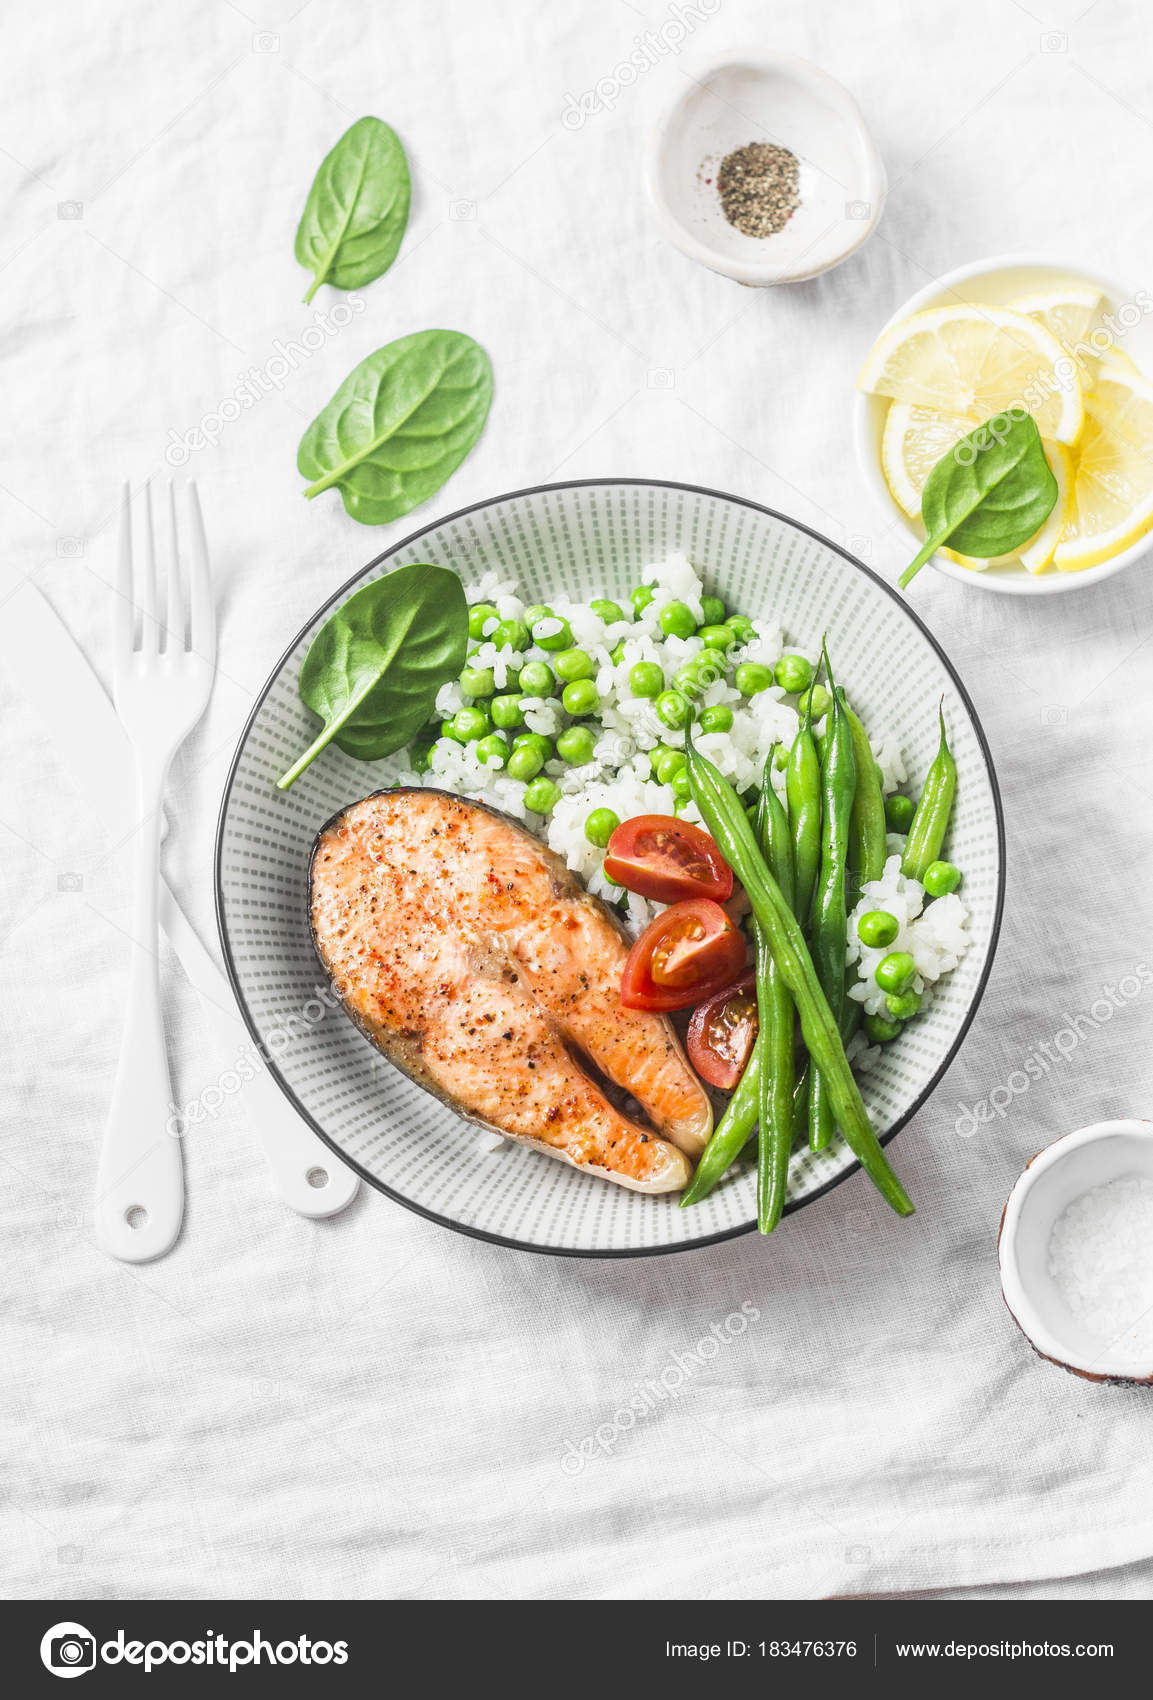 hight resolution of healthy balanced meal lunch plate baked salmon rice vegetables light stock photo